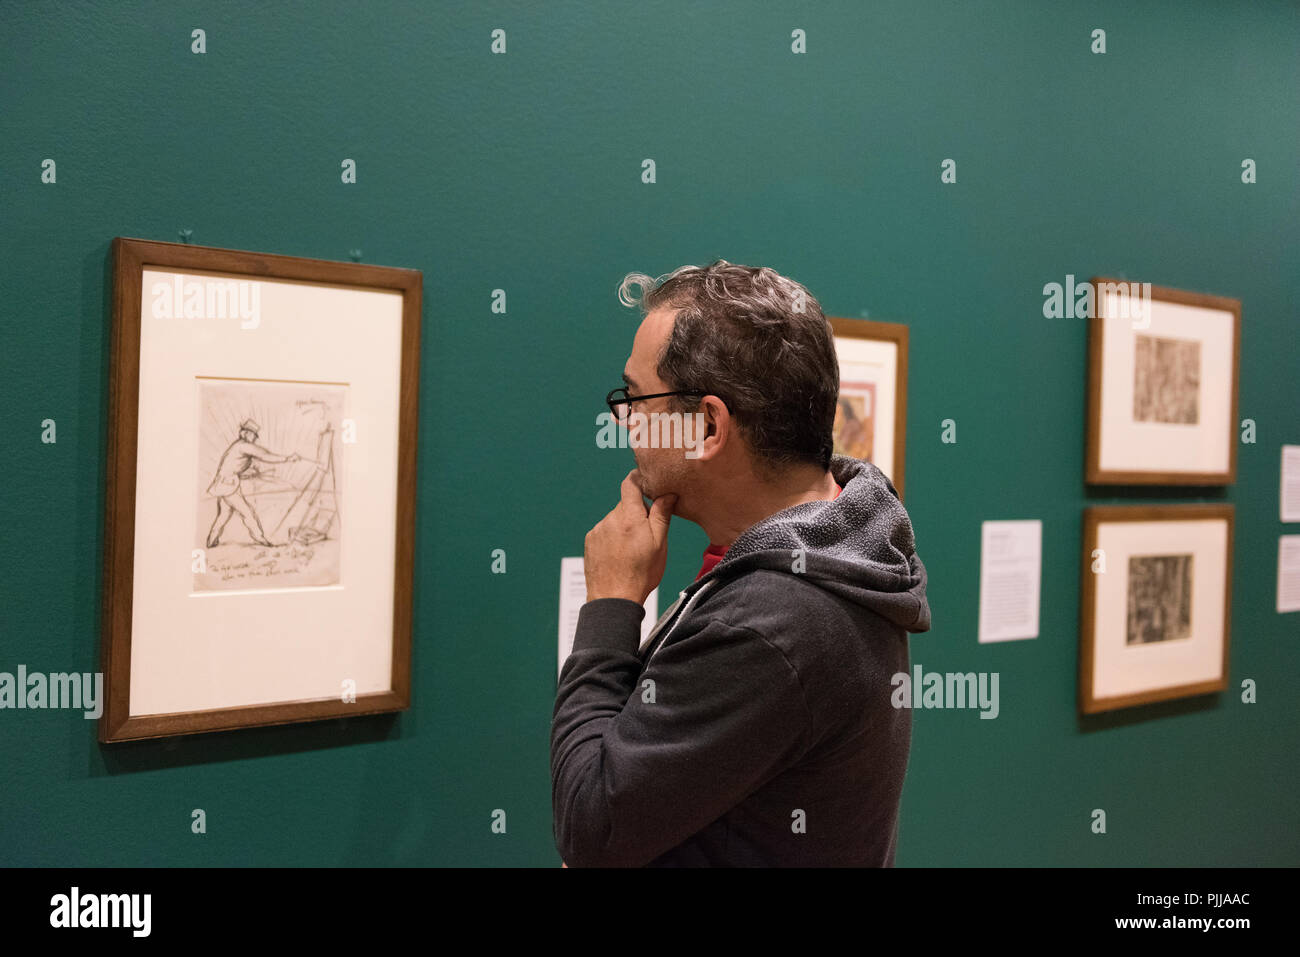 Male art lover, gazing at artwork on a wall. - Stock Image